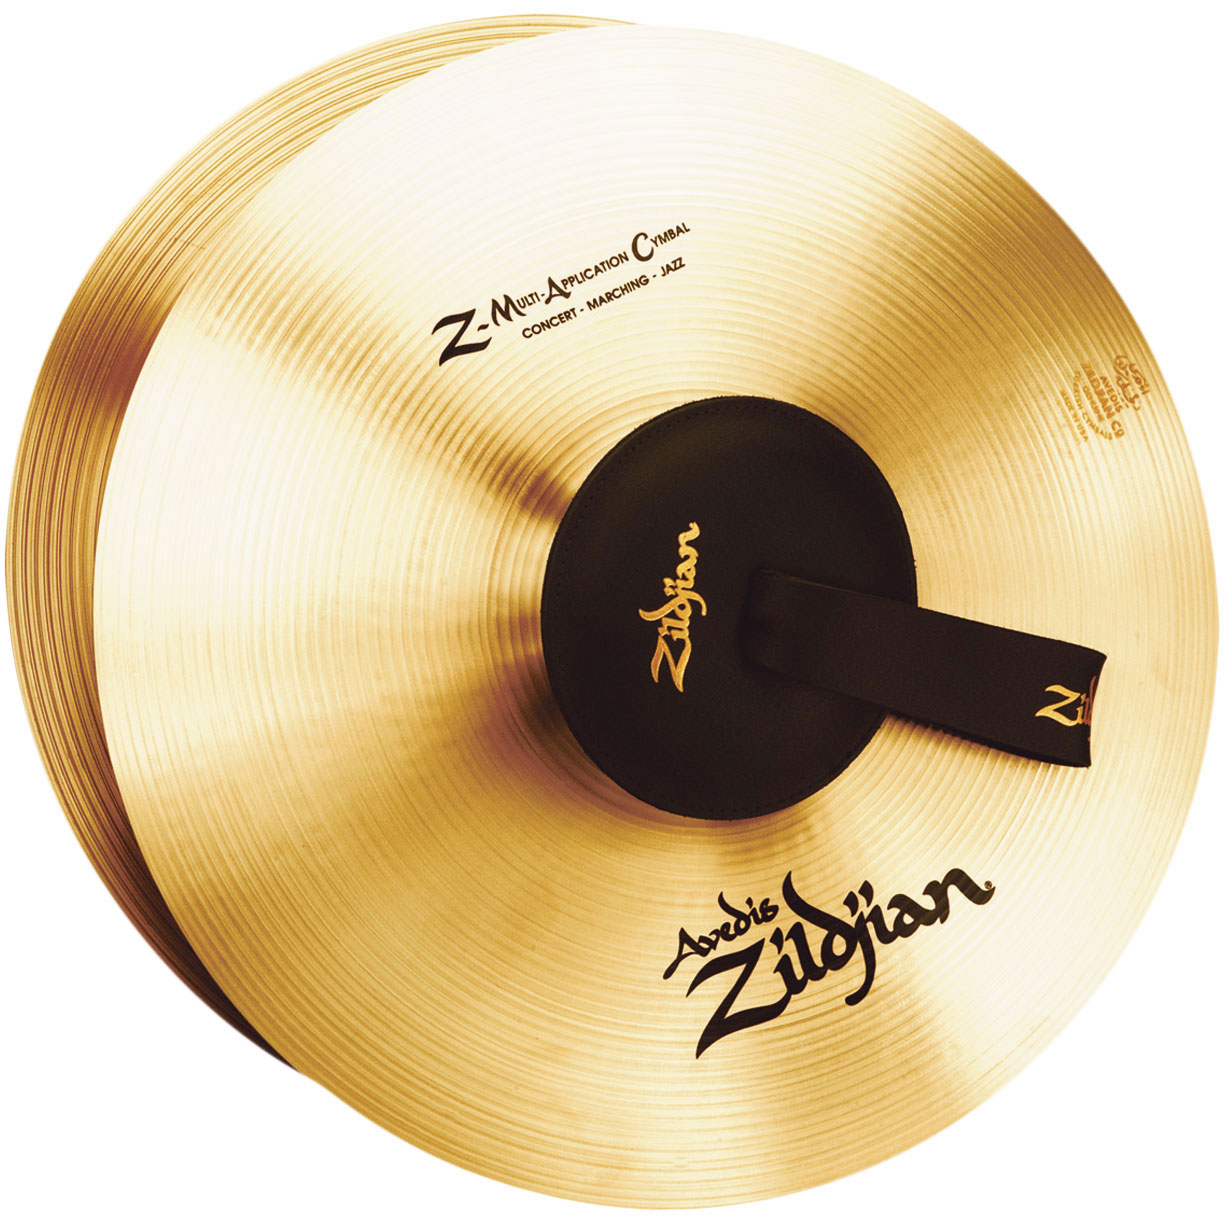 "Zildjian 18"" Z-Mac Crash Cymbal Pair"